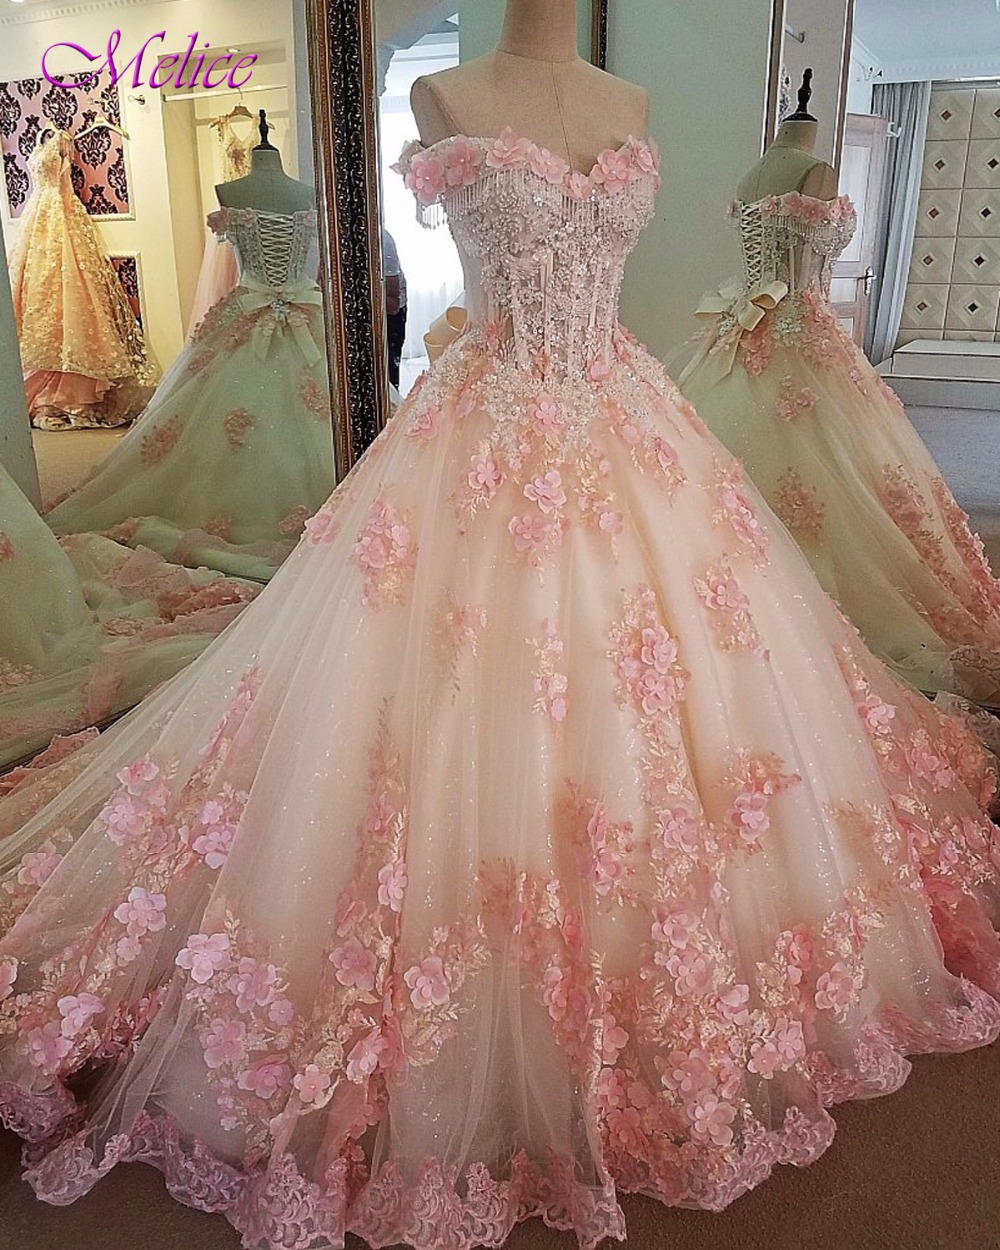 Fmogl Elegant Sweetheart Neck Beaded Sequined Ball Gown Quinceanera Dress 2019 Appliques Debutante Dress For Vestido